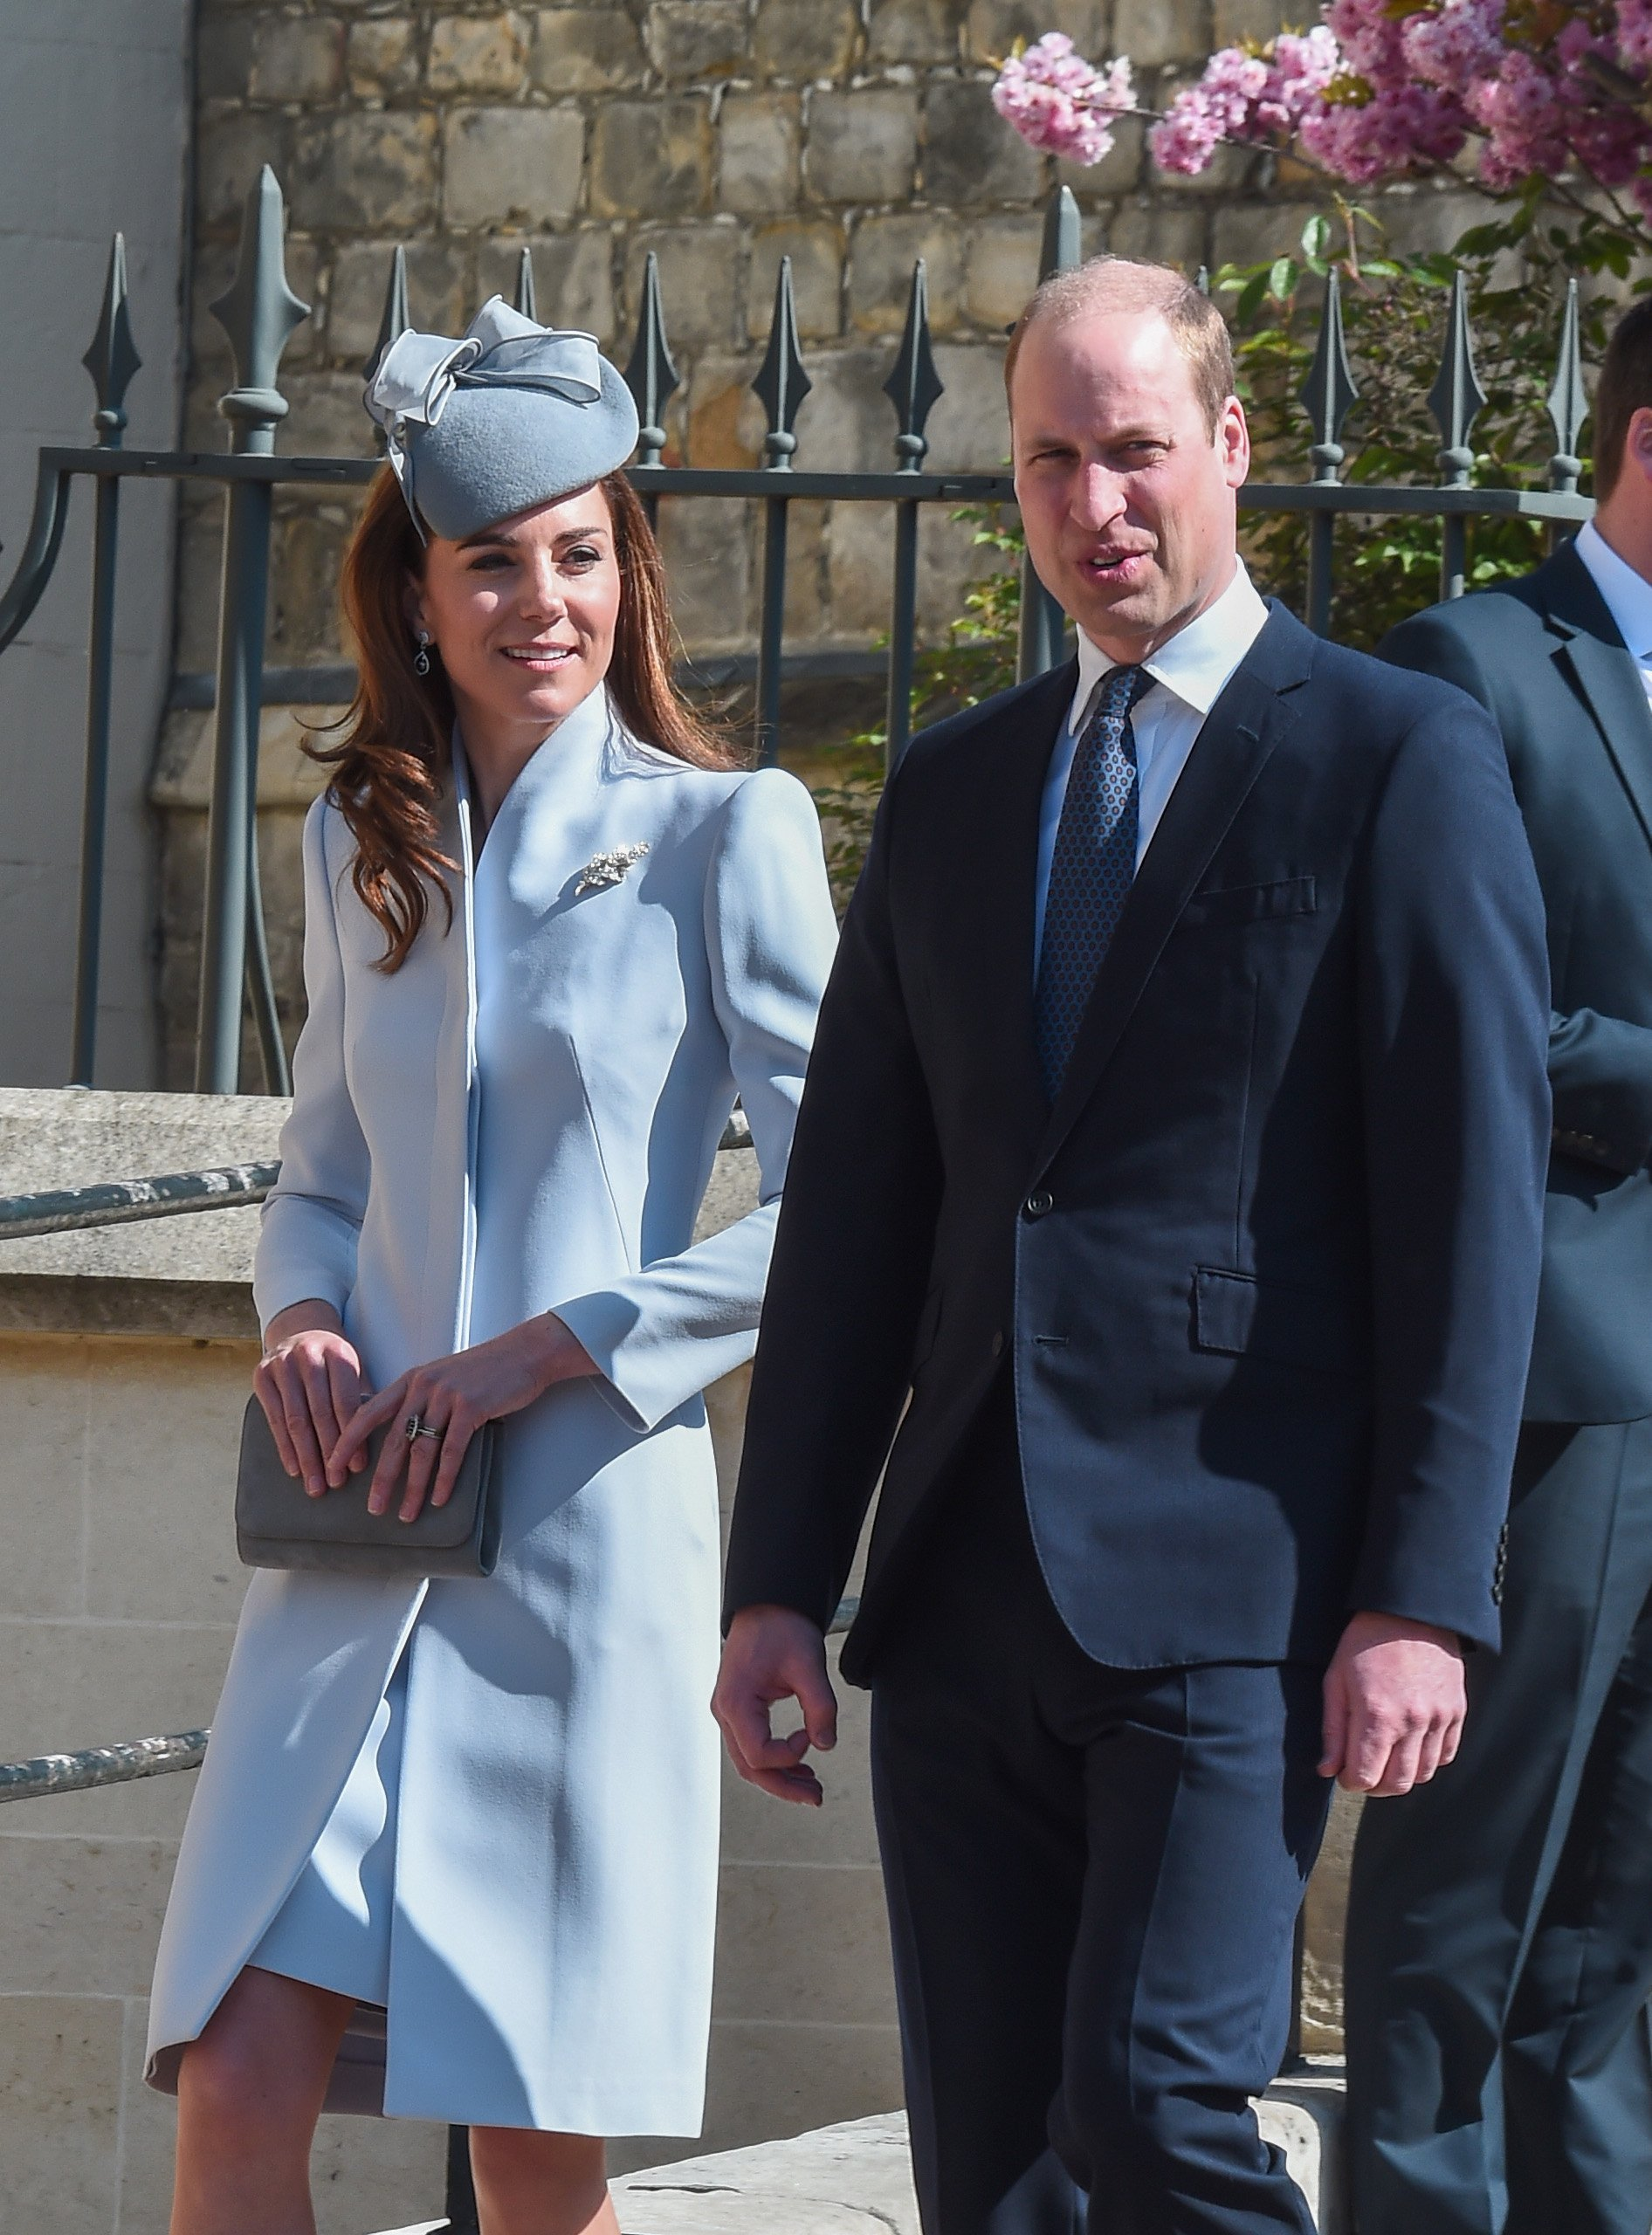 The Duke and Duchess of Cambridge attend the Easter Sunday service at St George's Chapel on April 21, 2019. | Photo: GettyImages